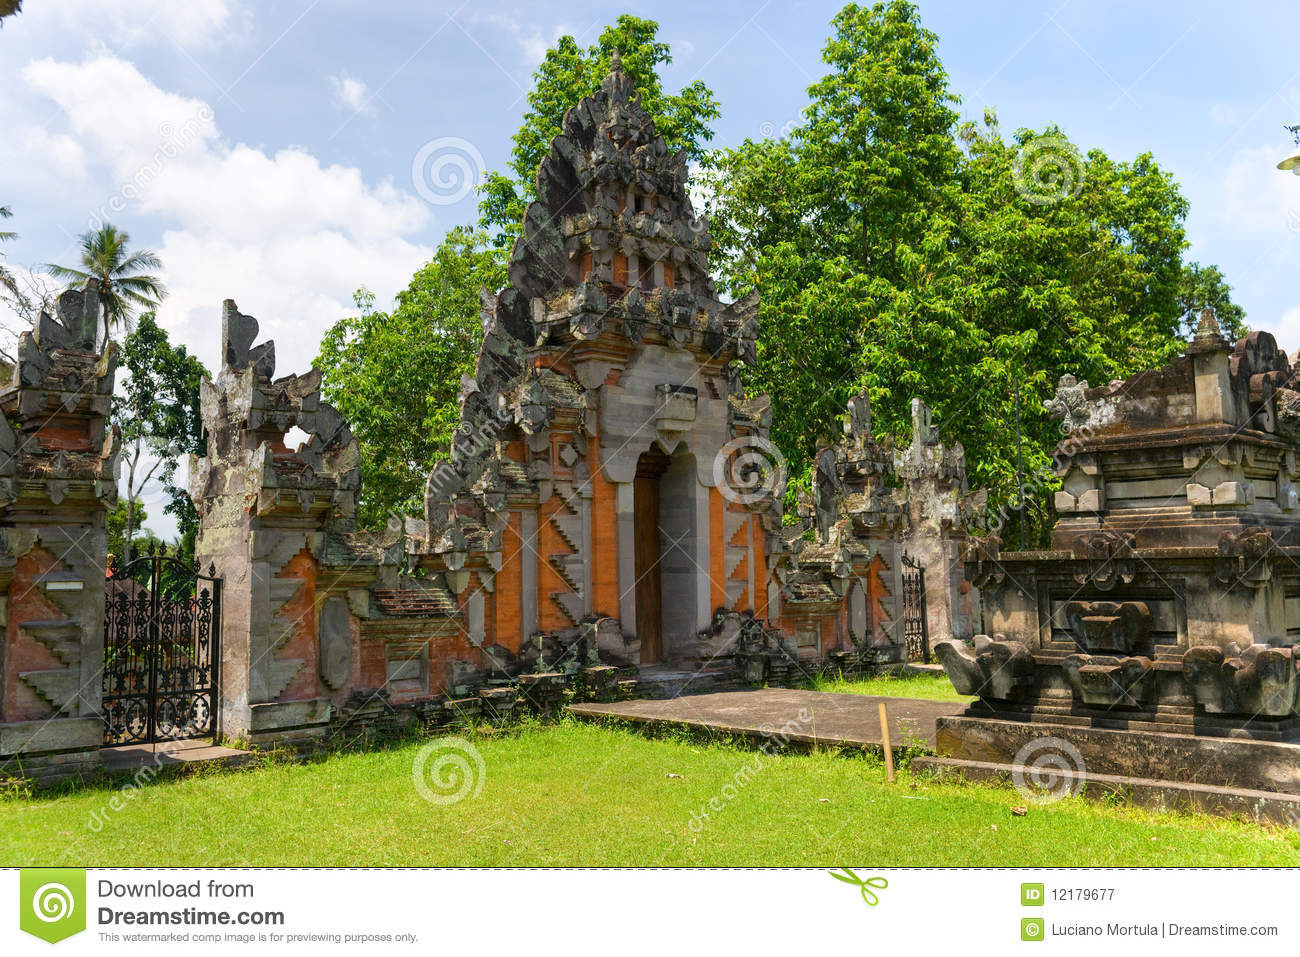 indu temple in ubud bali indonesia royalty free stock photography image 12179677. Black Bedroom Furniture Sets. Home Design Ideas